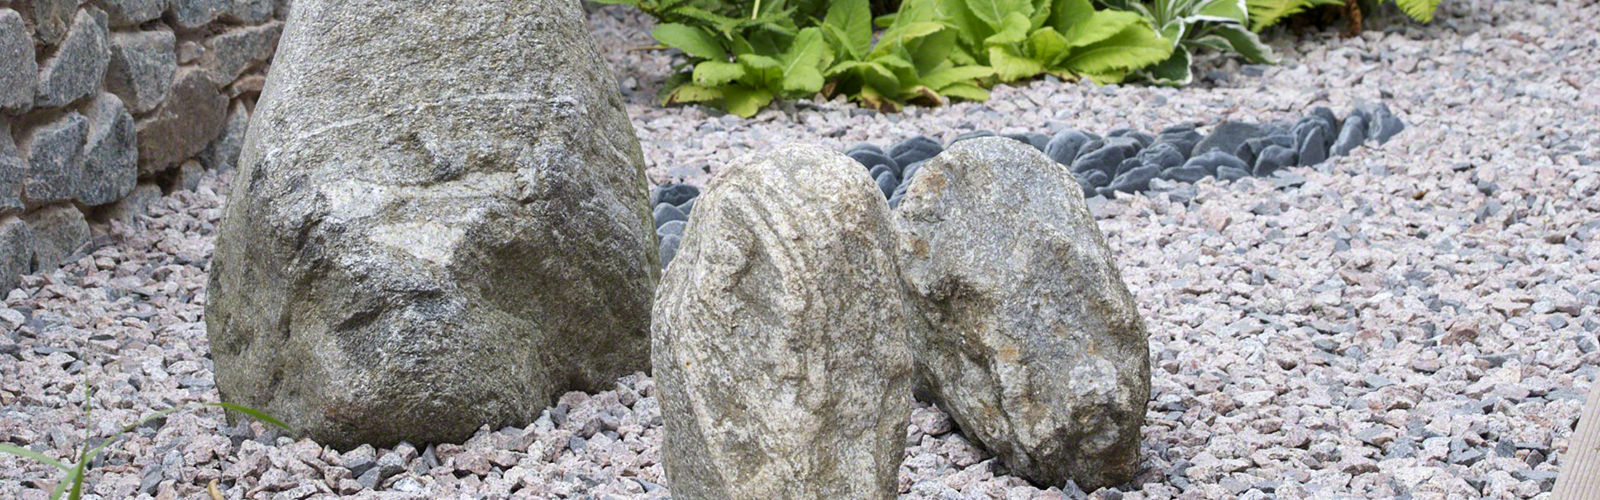 superb-n-stones-with-rocks-bring_garden-rocks